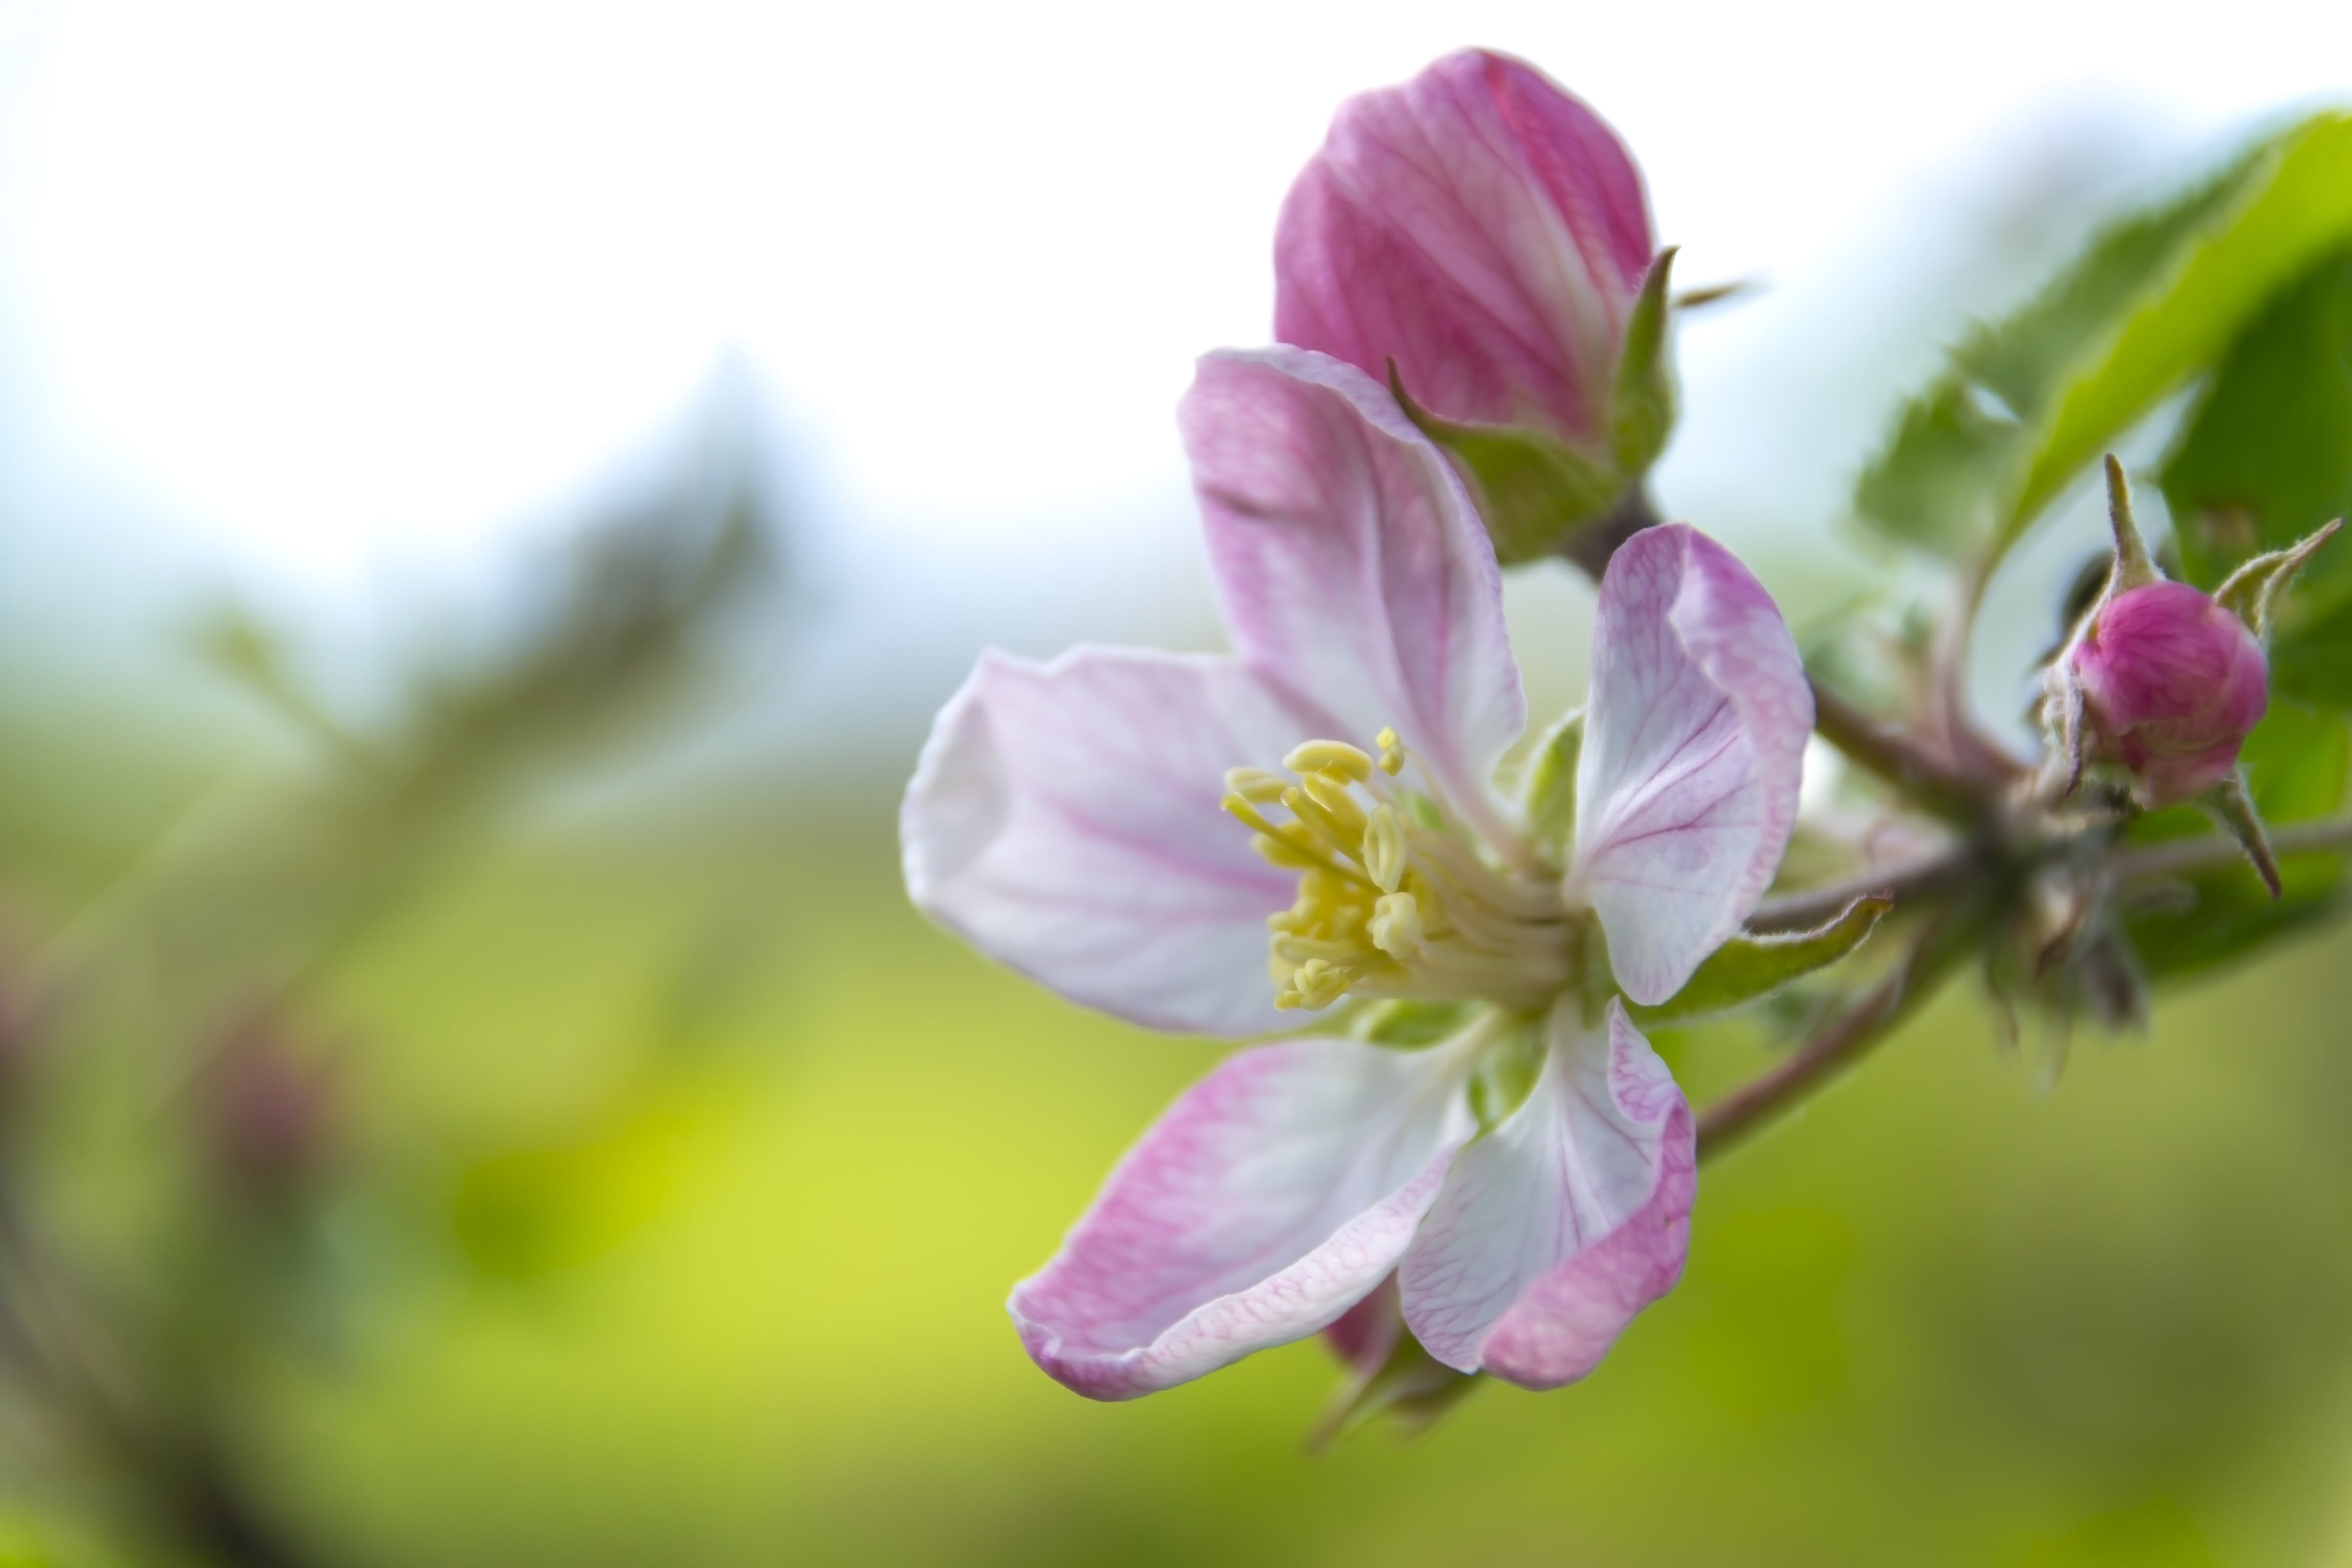 Macro Photography of Pink and White Peach Blossom Flower